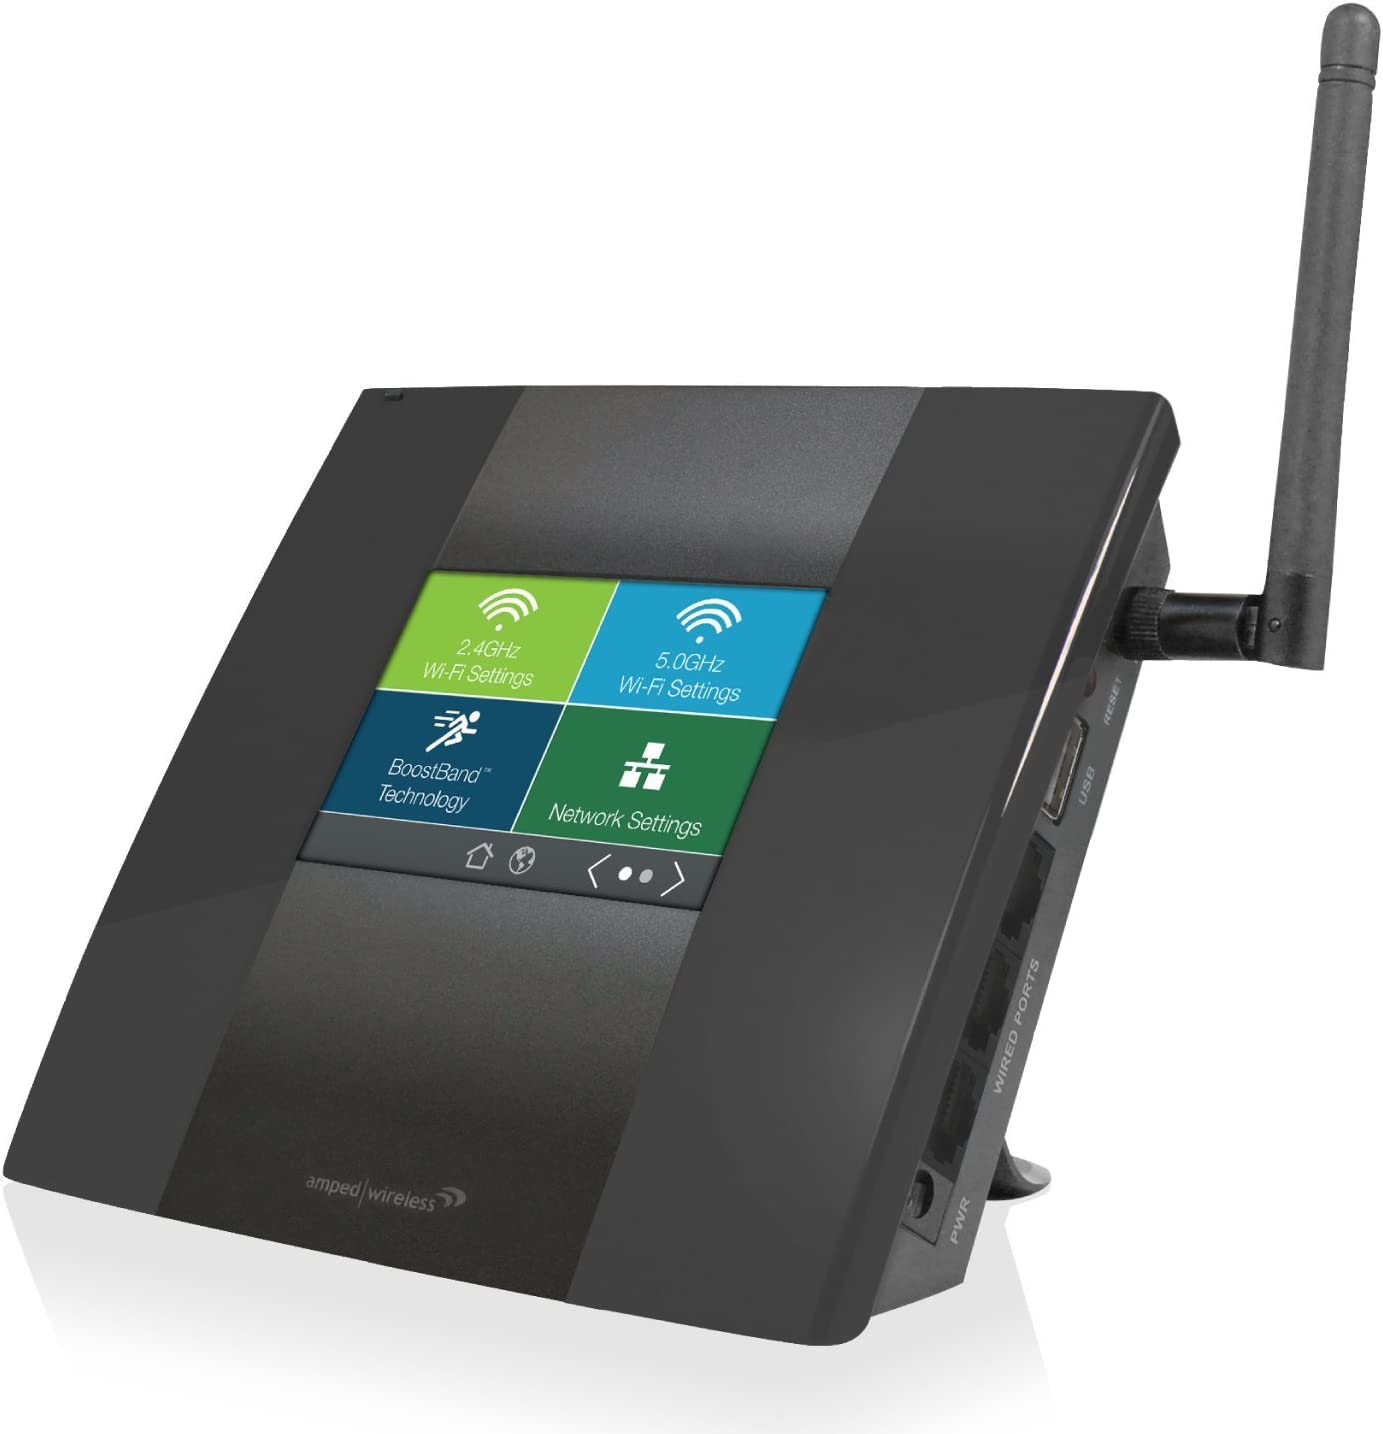 Amped Wireless High Power Touch Screen AC750 Wi-Fi Range Extender (TAP-EX2)